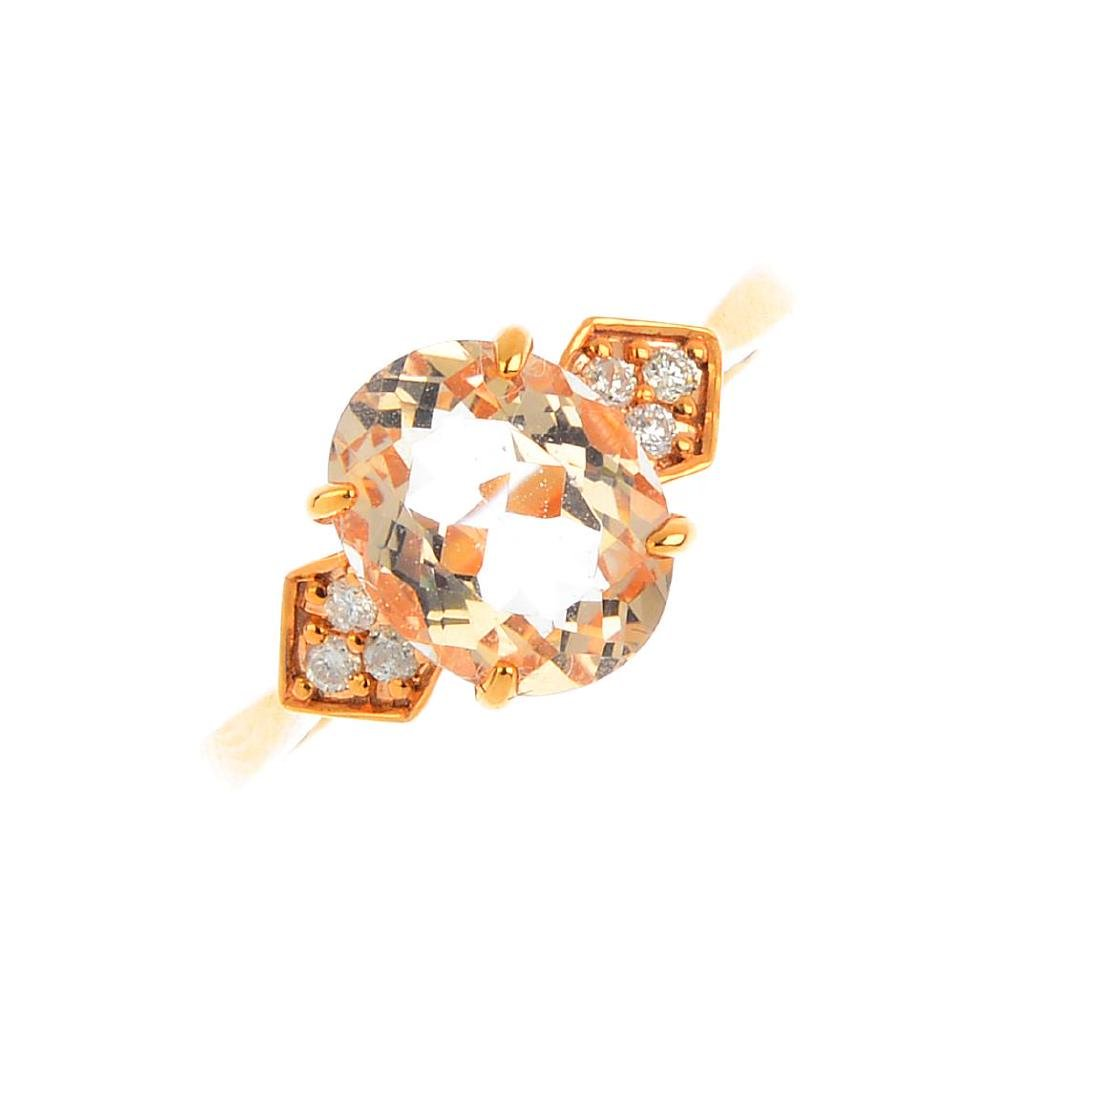 A morganite and diamond dress ring. The oval-shape